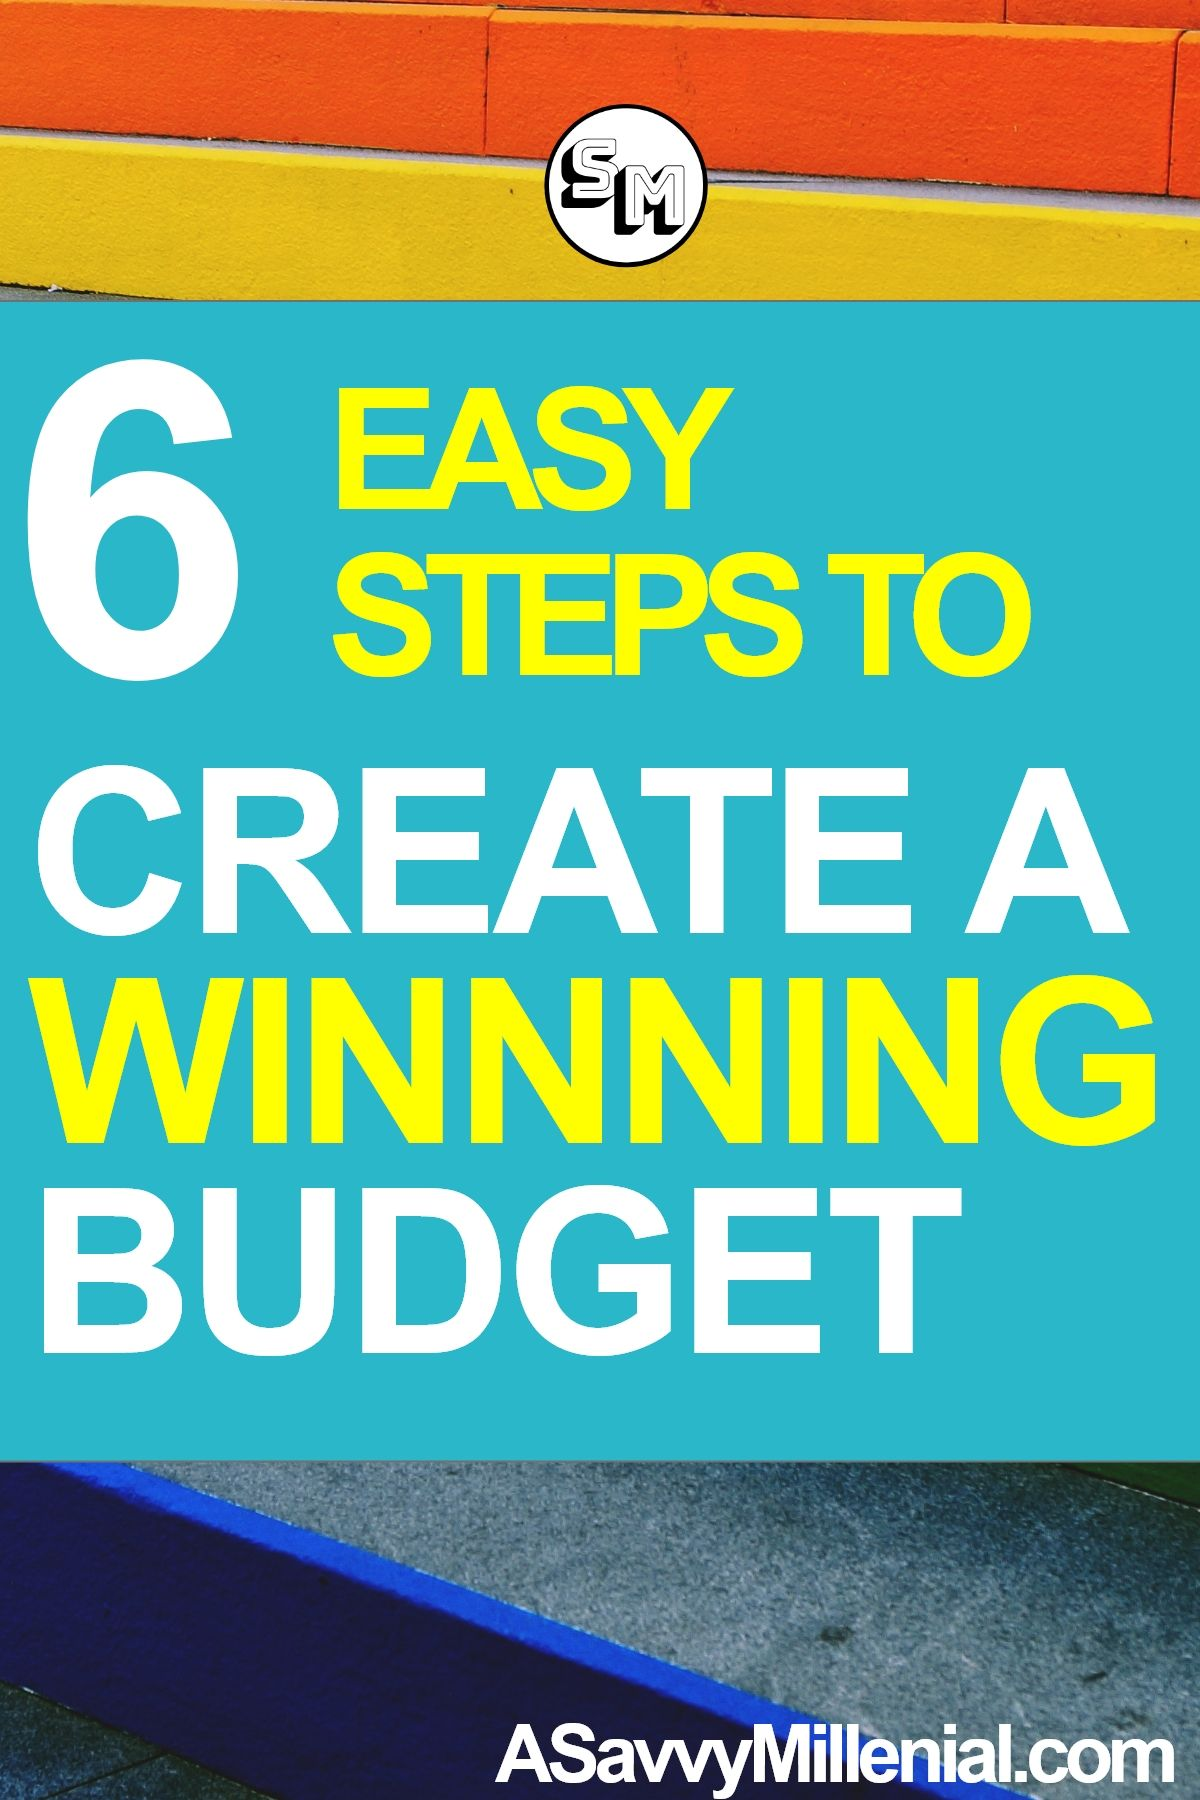 6 Easy Steps To Create A Winning Budget